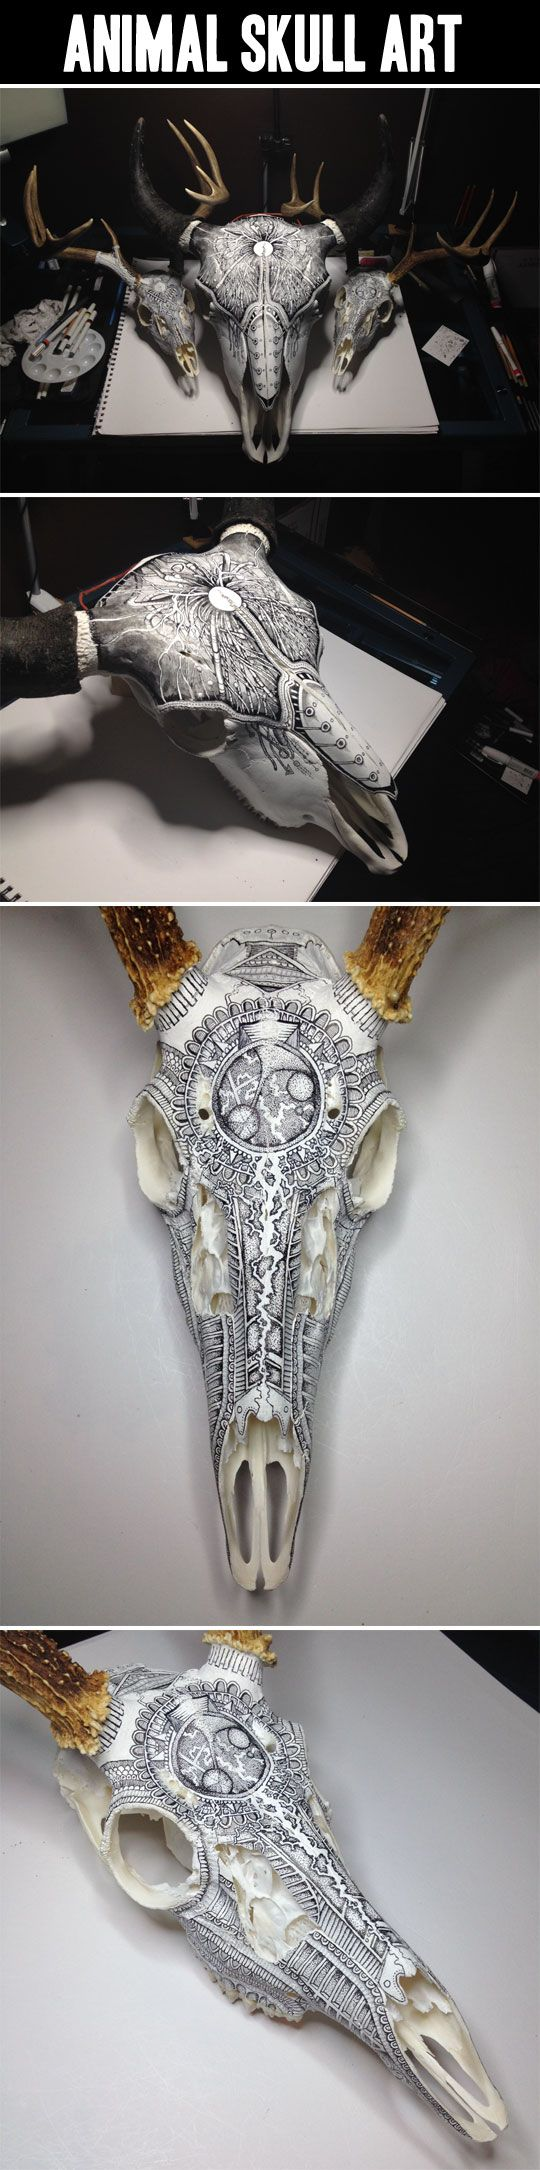 Animal Skull Art… i usually hate the dead animals on the wall thing but these are cool